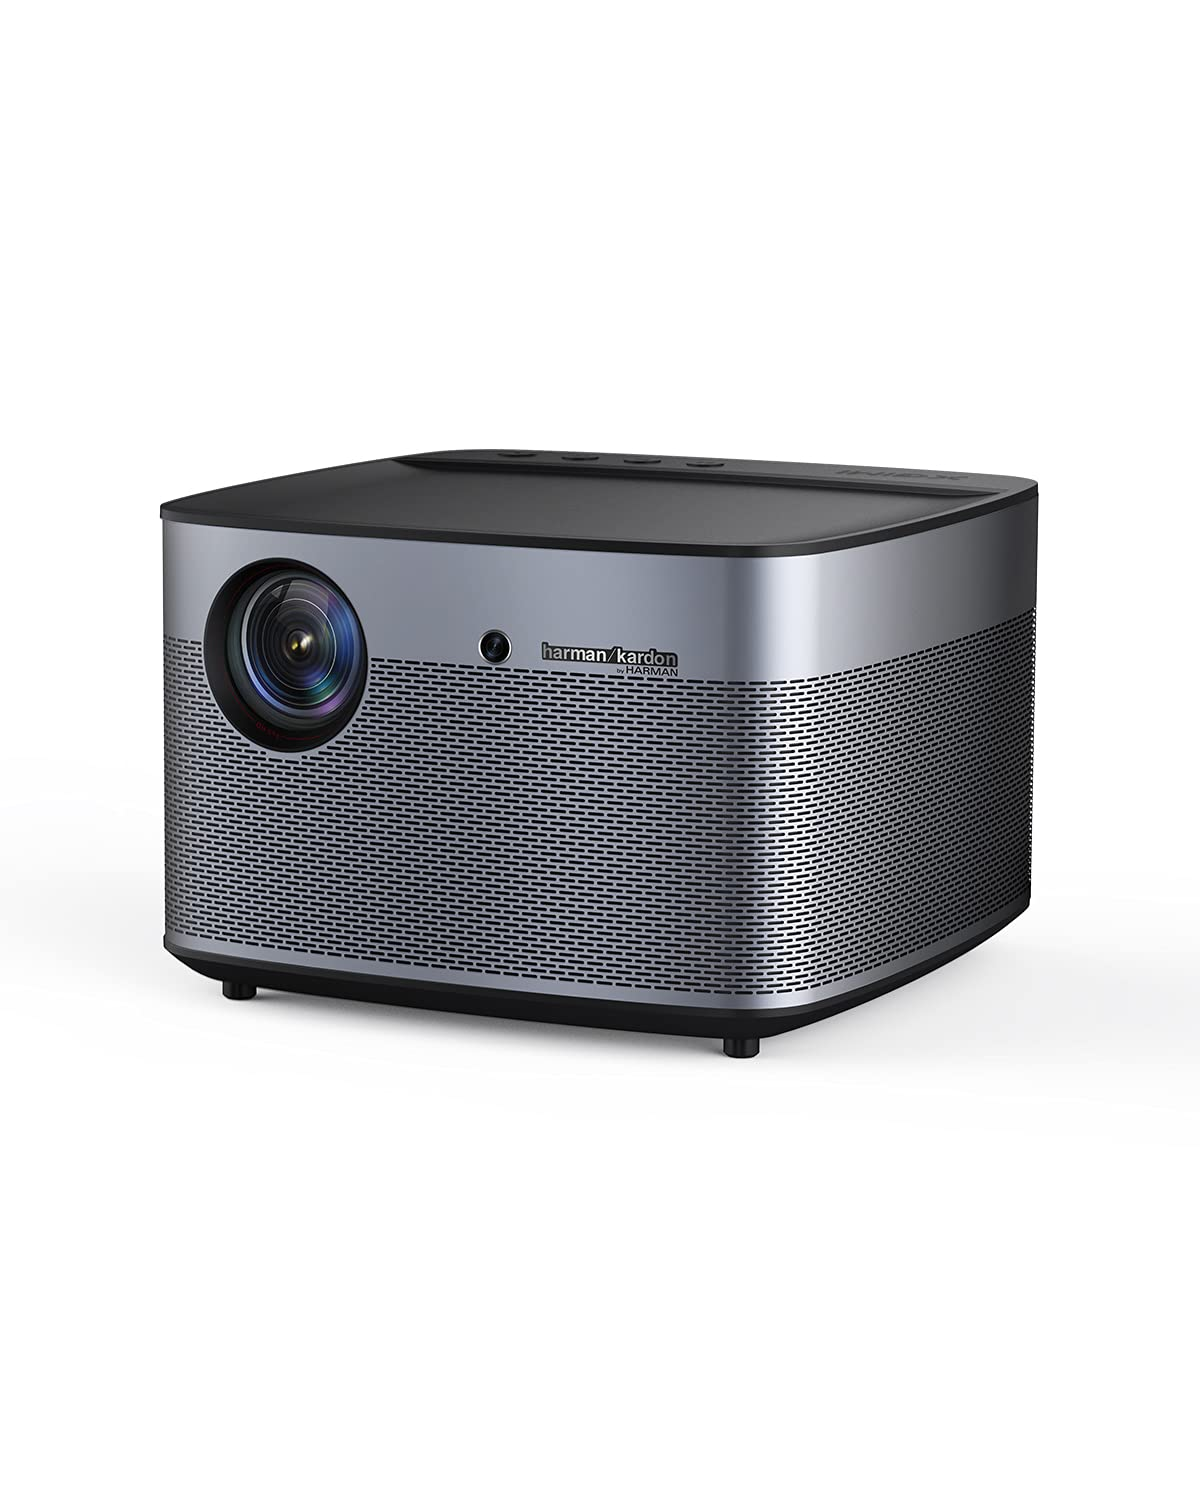 XGIMI H2 True 1080p Movie Projector, 4K Supported Smart Projector, 1350 ANSI Lumens Home Theater Projector, Integrated Harman Kardon Sound Bar, Auto Focus, Auto Keystone Correction, Android OS